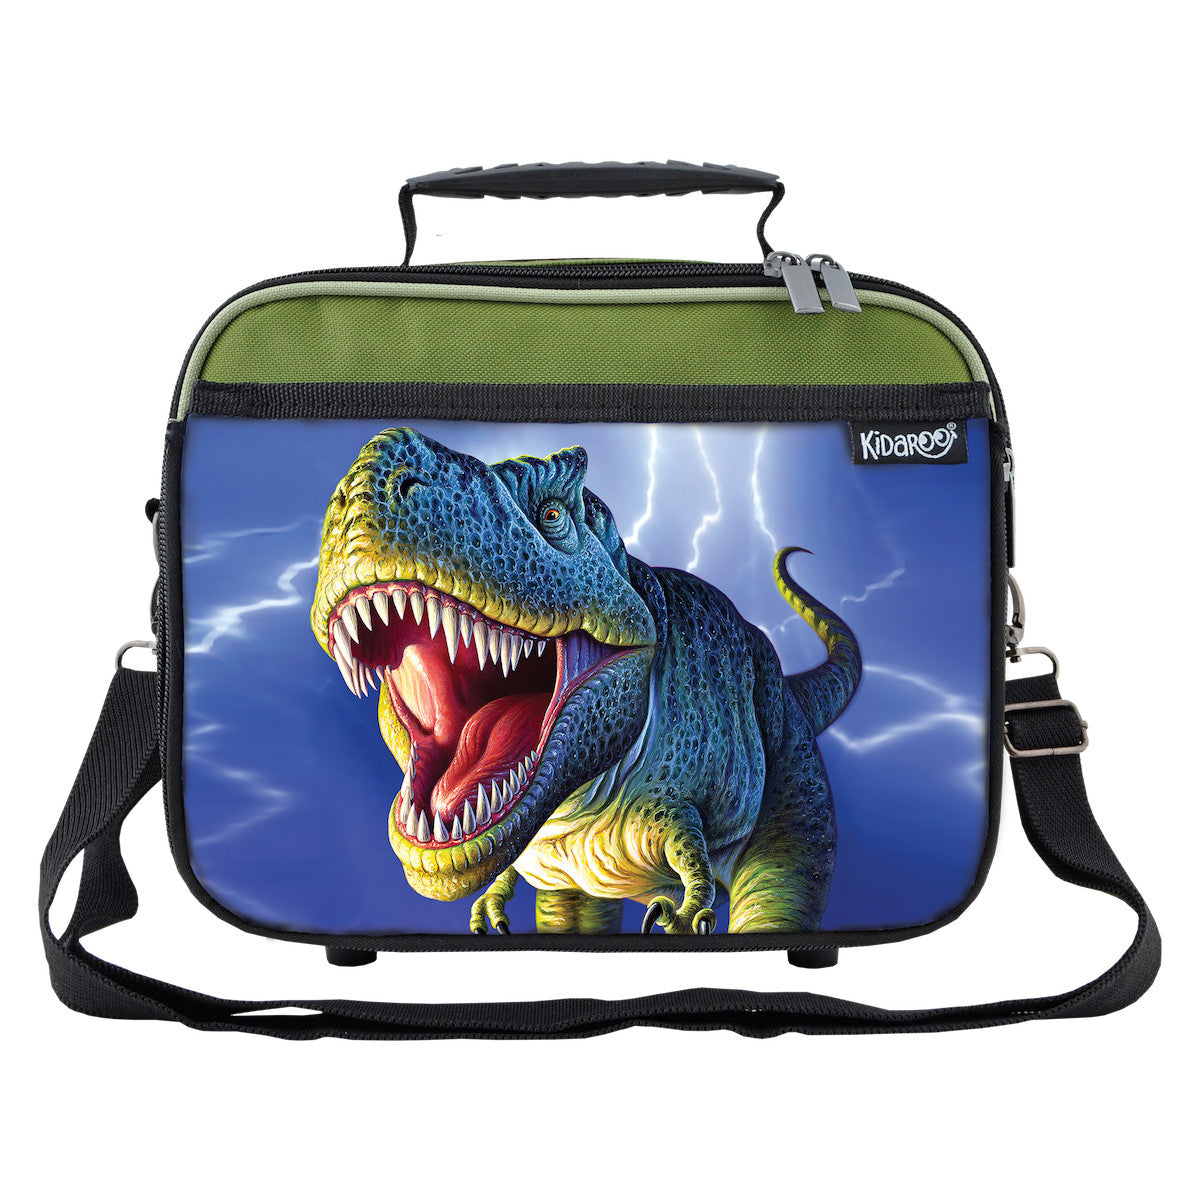 Kidaroo Khaki Green Lightning Rex Dinosaur School Lunchbox Tote for Boys, Girls